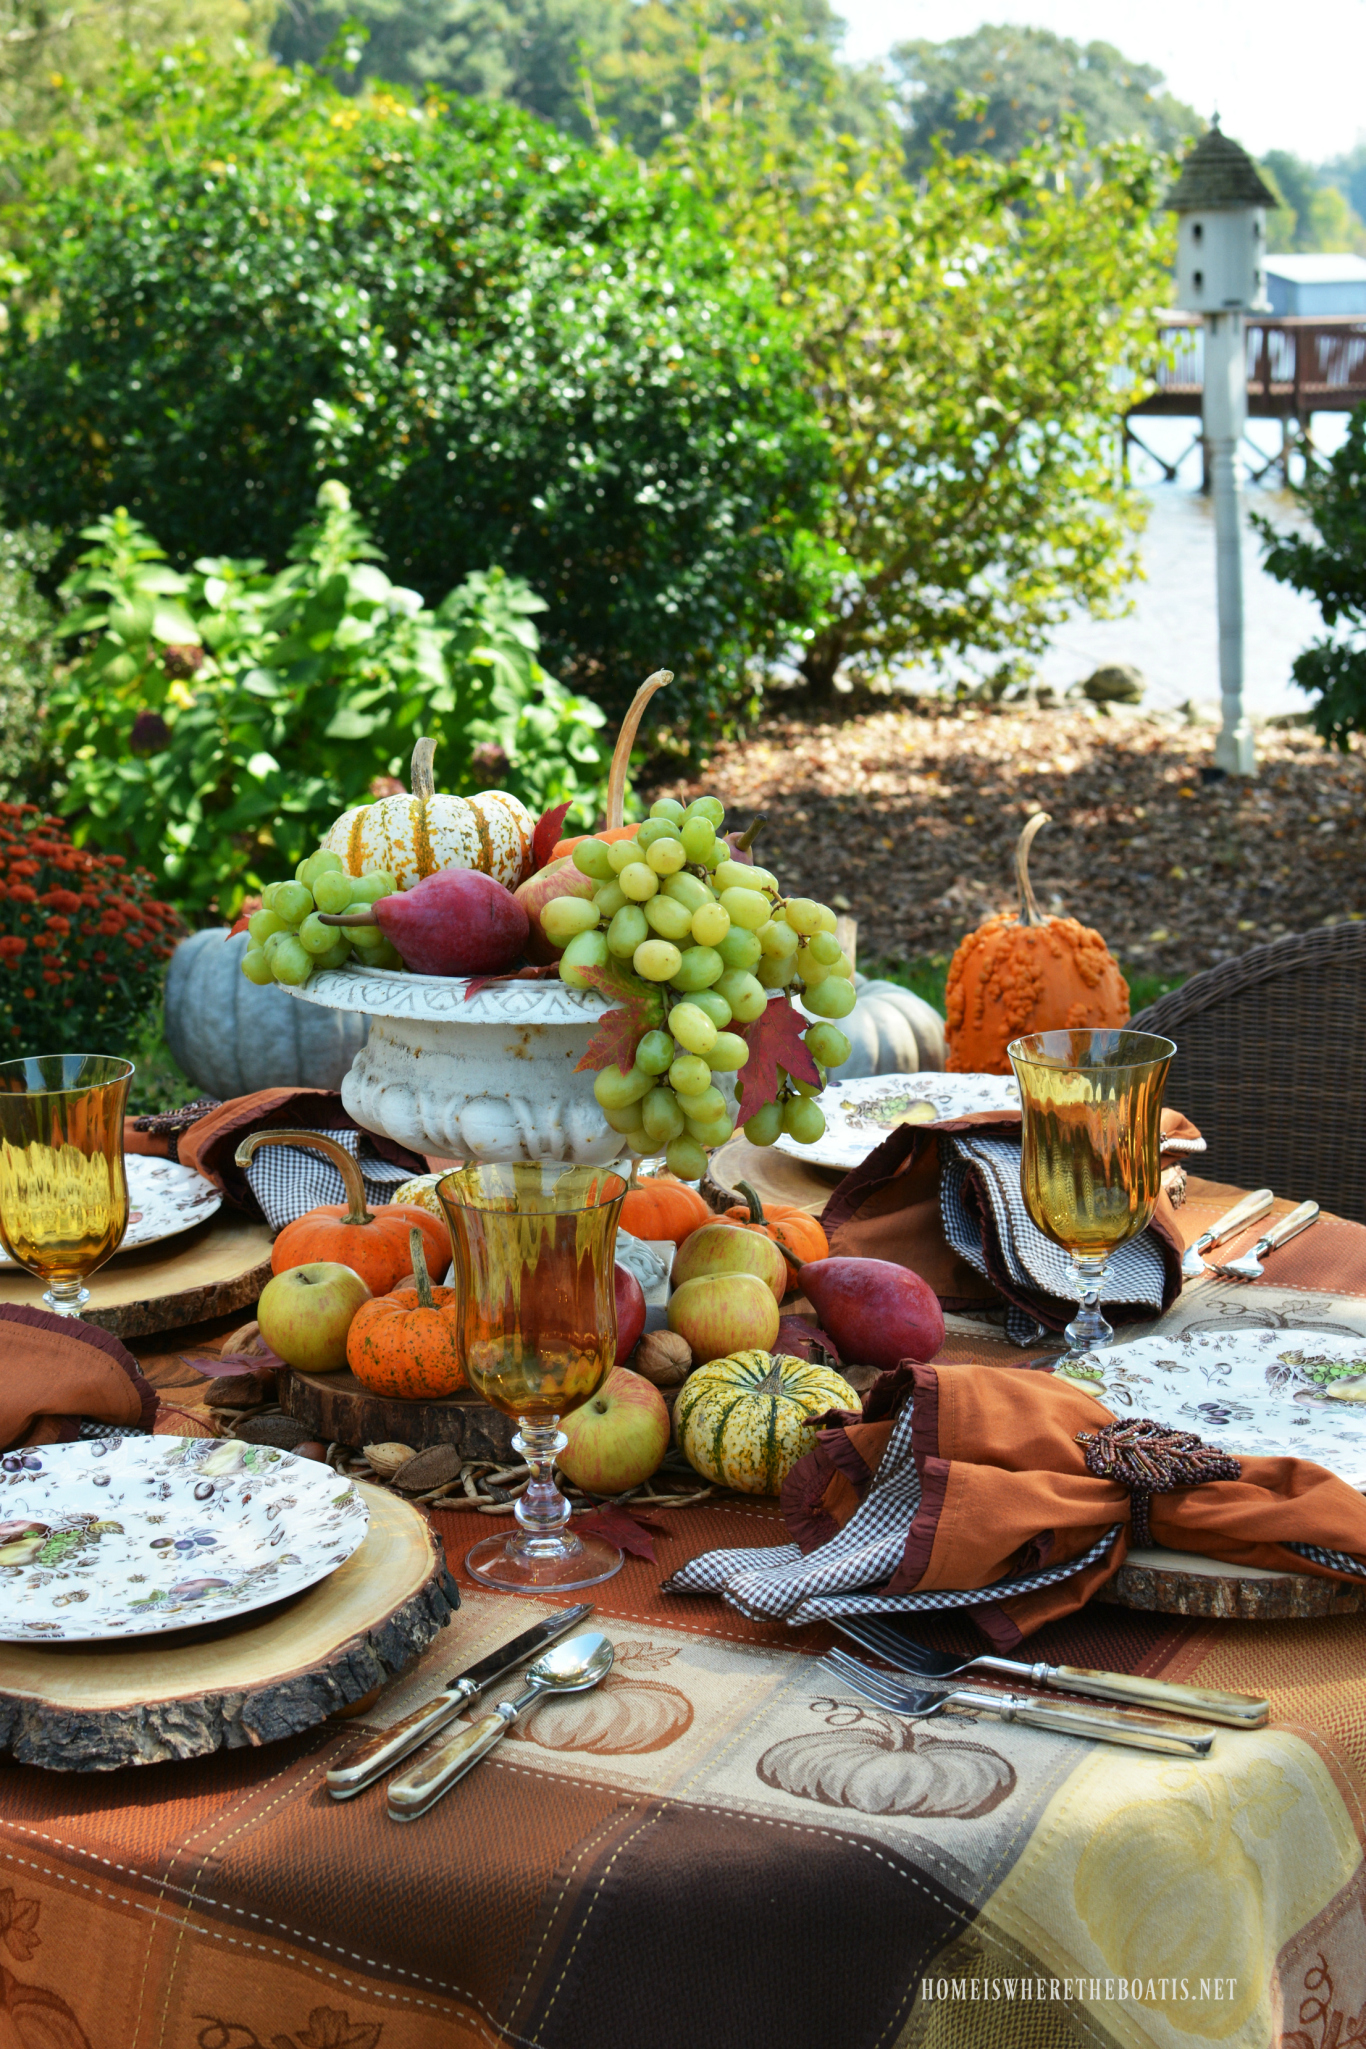 Creative Ideas for Fall or Thanksgiving Table Settings and Home Decor 8